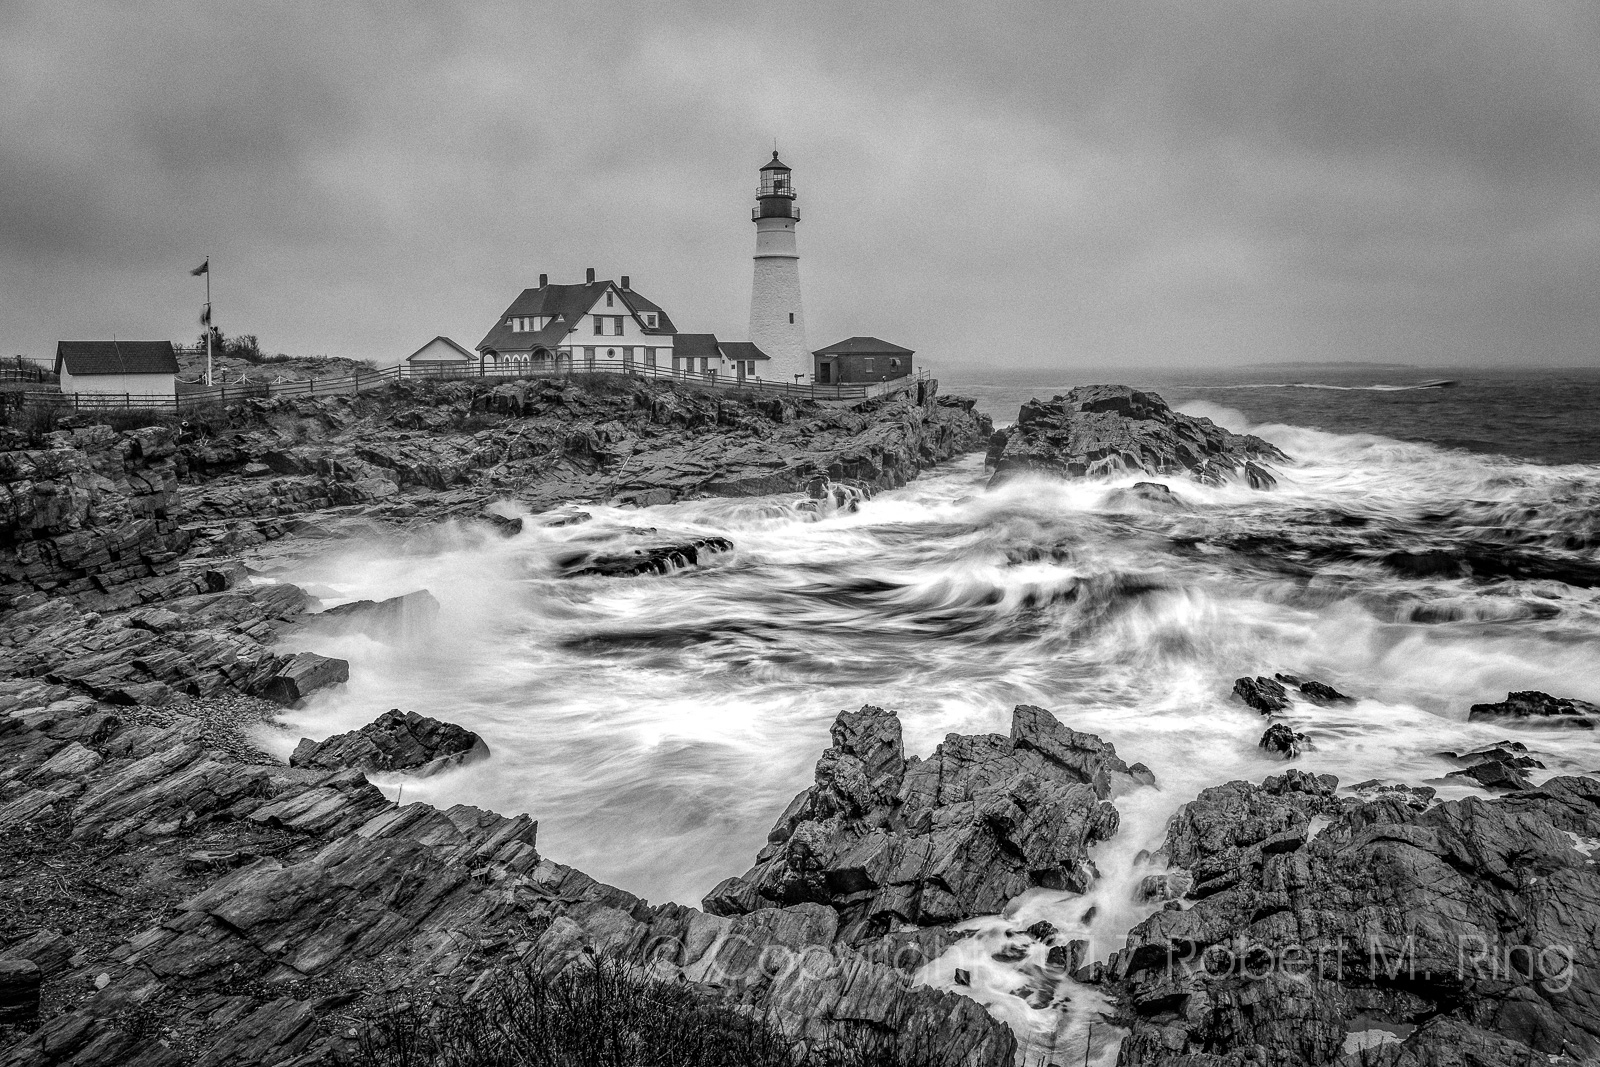 Maine, New England, Portland Maine, coast, waves, black & white, photo